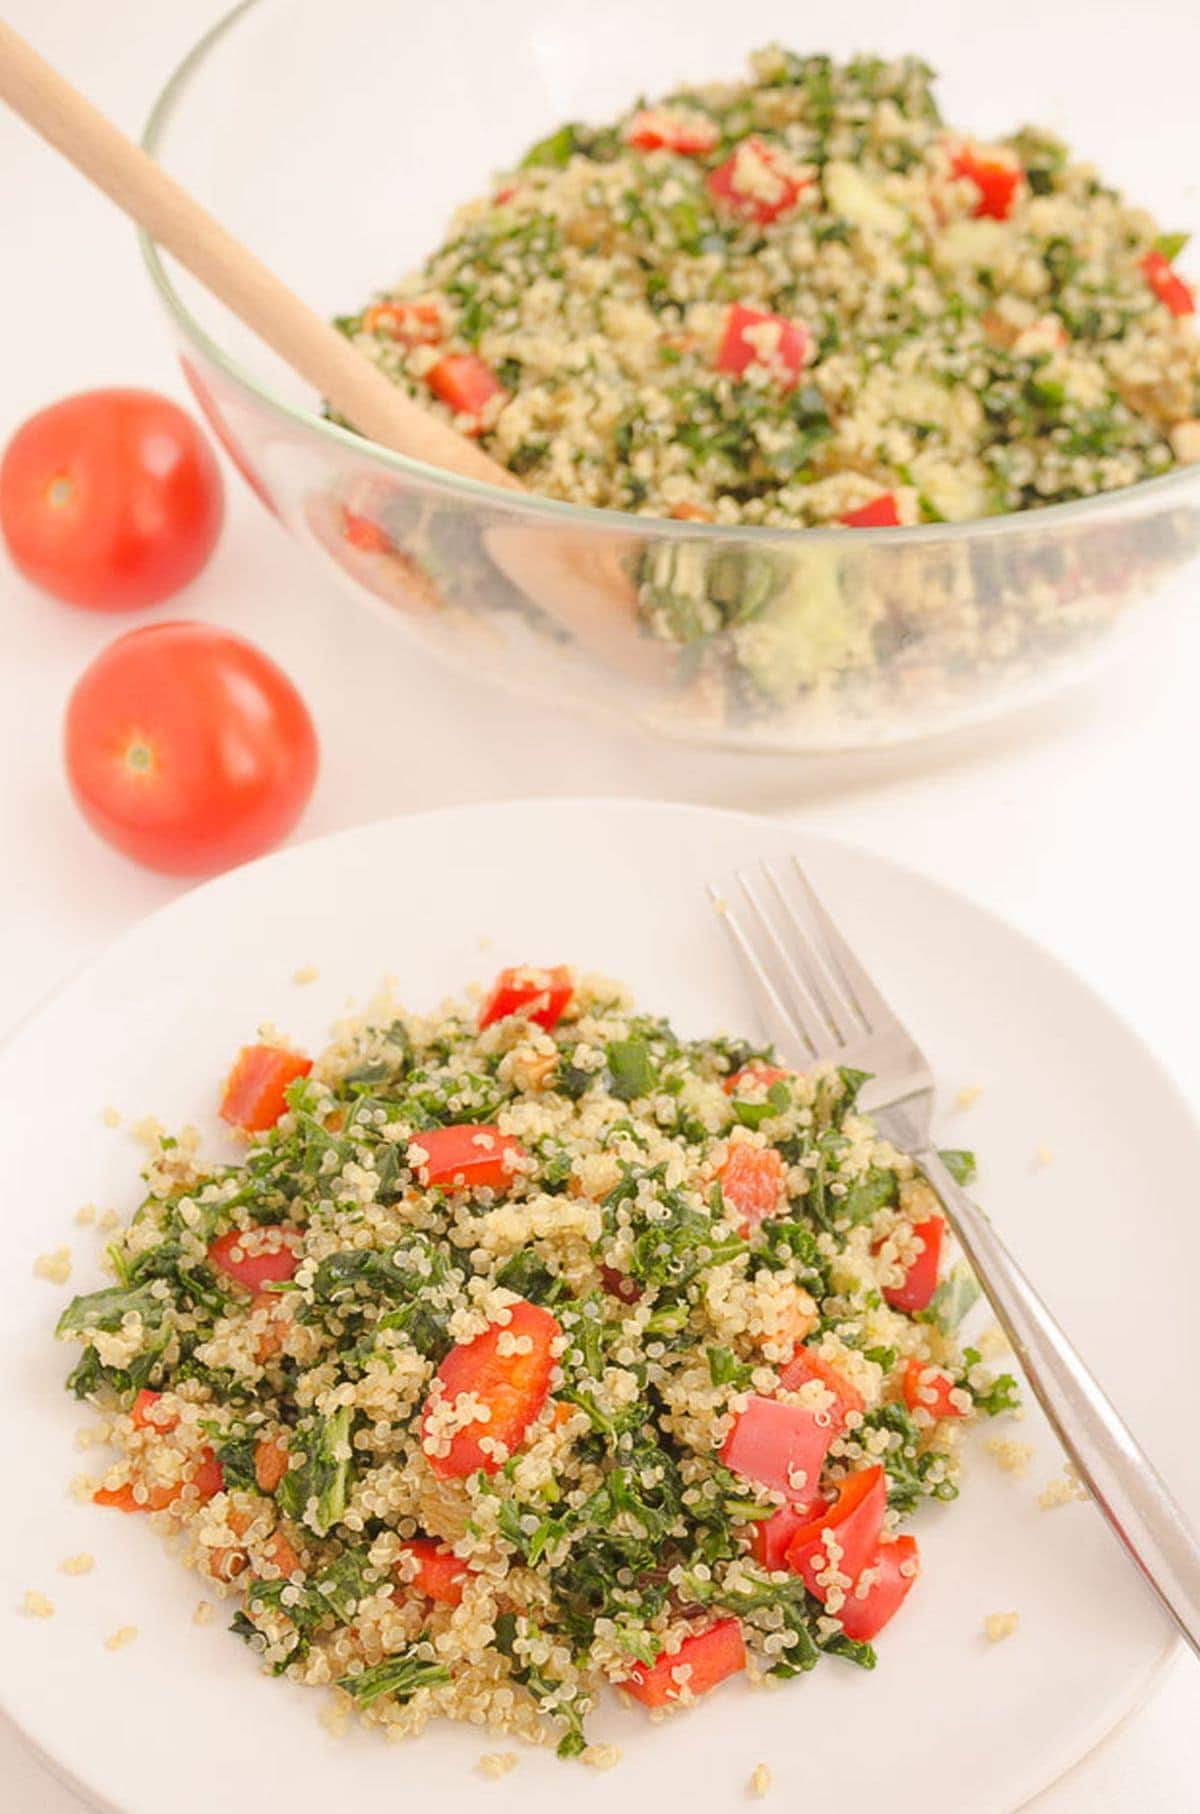 A plate of served quinoa kale almond salad with the rest of the salad in a bowl in the background.